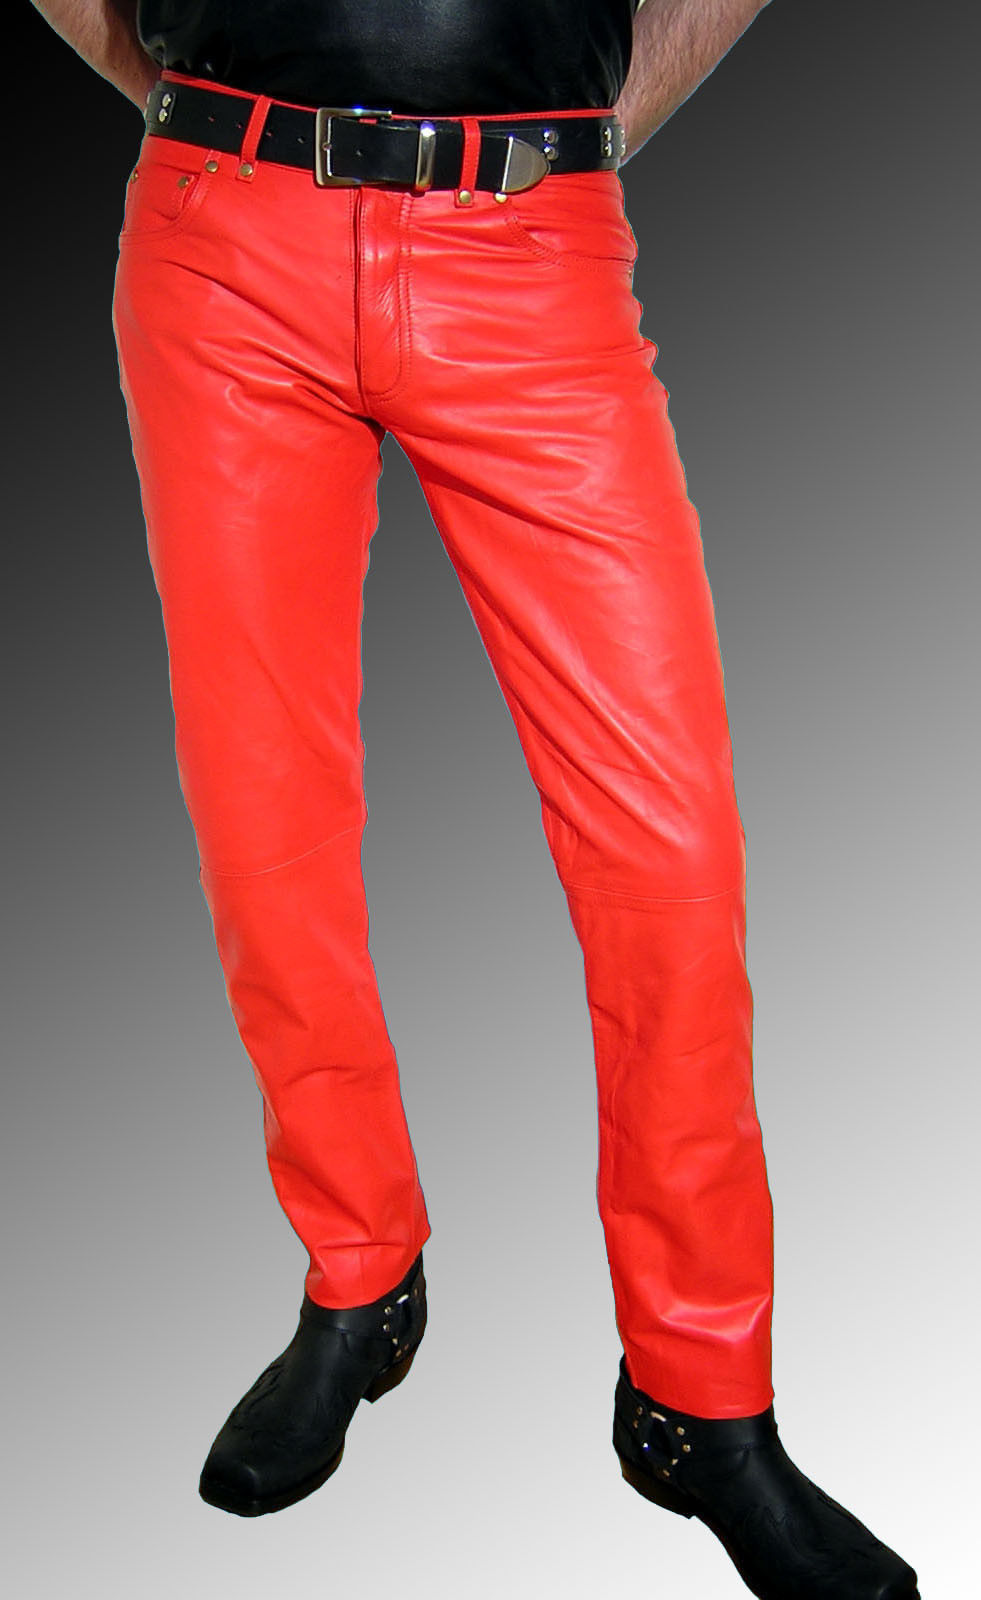 Handmade Men Leather Jeans Red Leather Pants Red Trousers